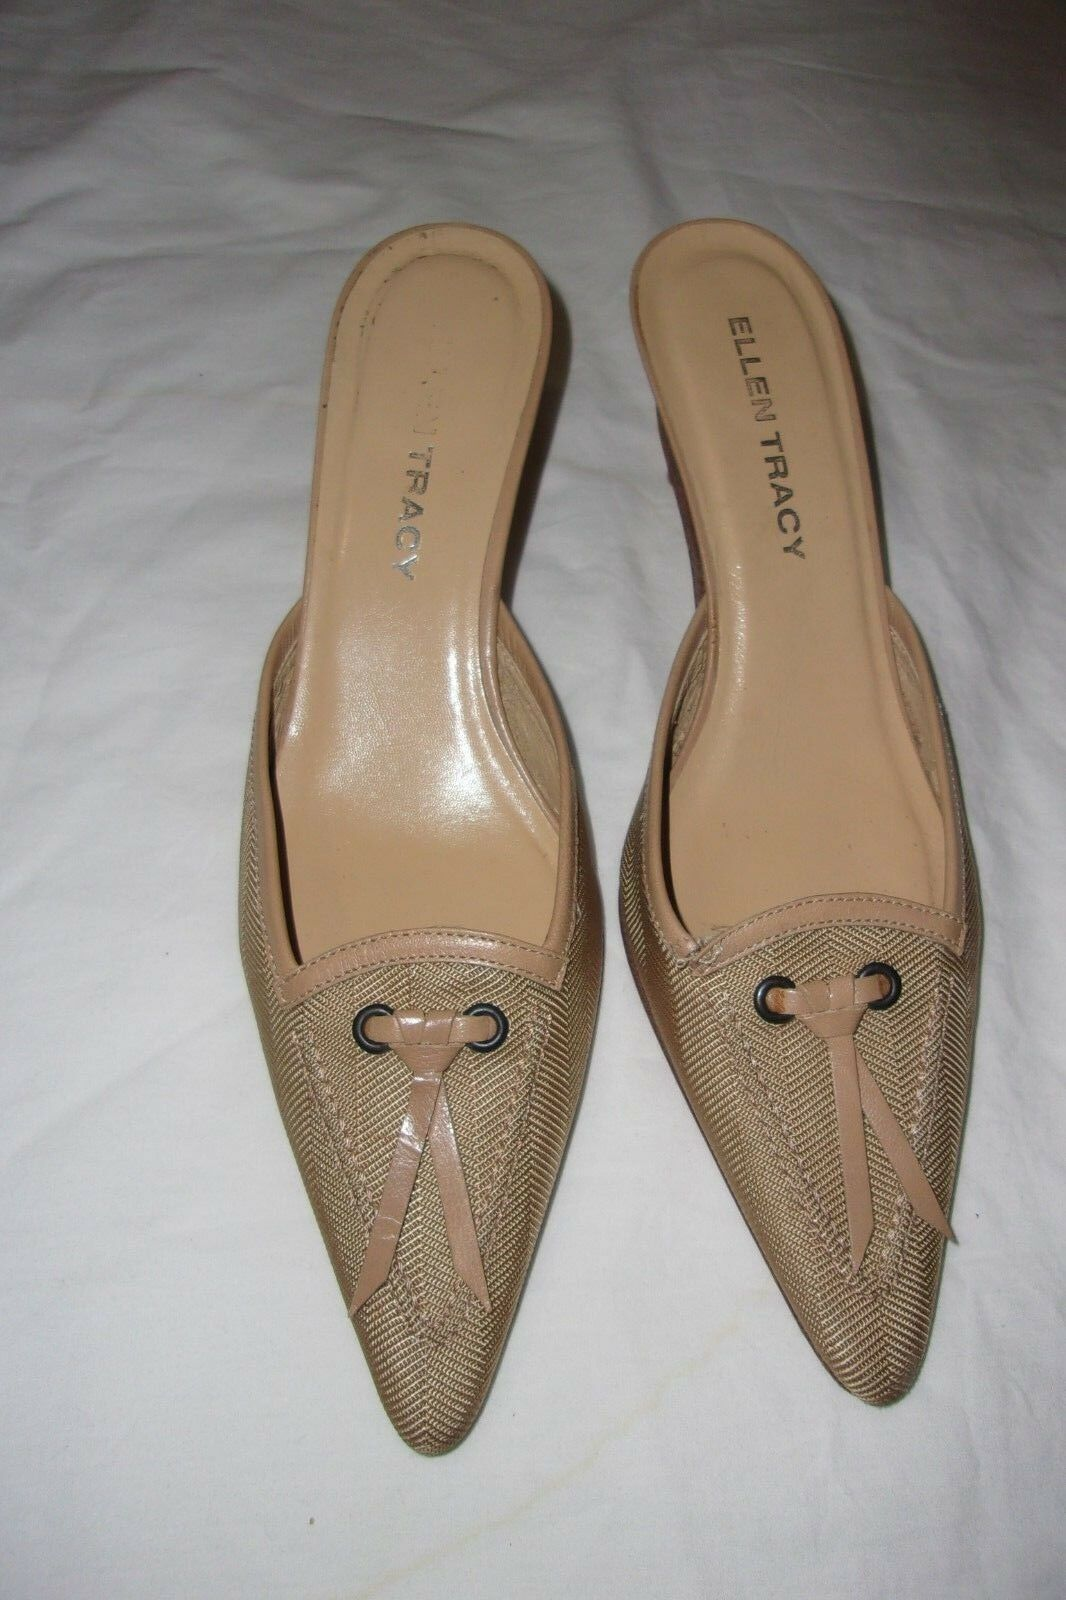 ELLEN TRACY TAUPE TEXTILE AND LEATHER WOMEN'S POINTY TOE SLIDES SIZE 7.5 B